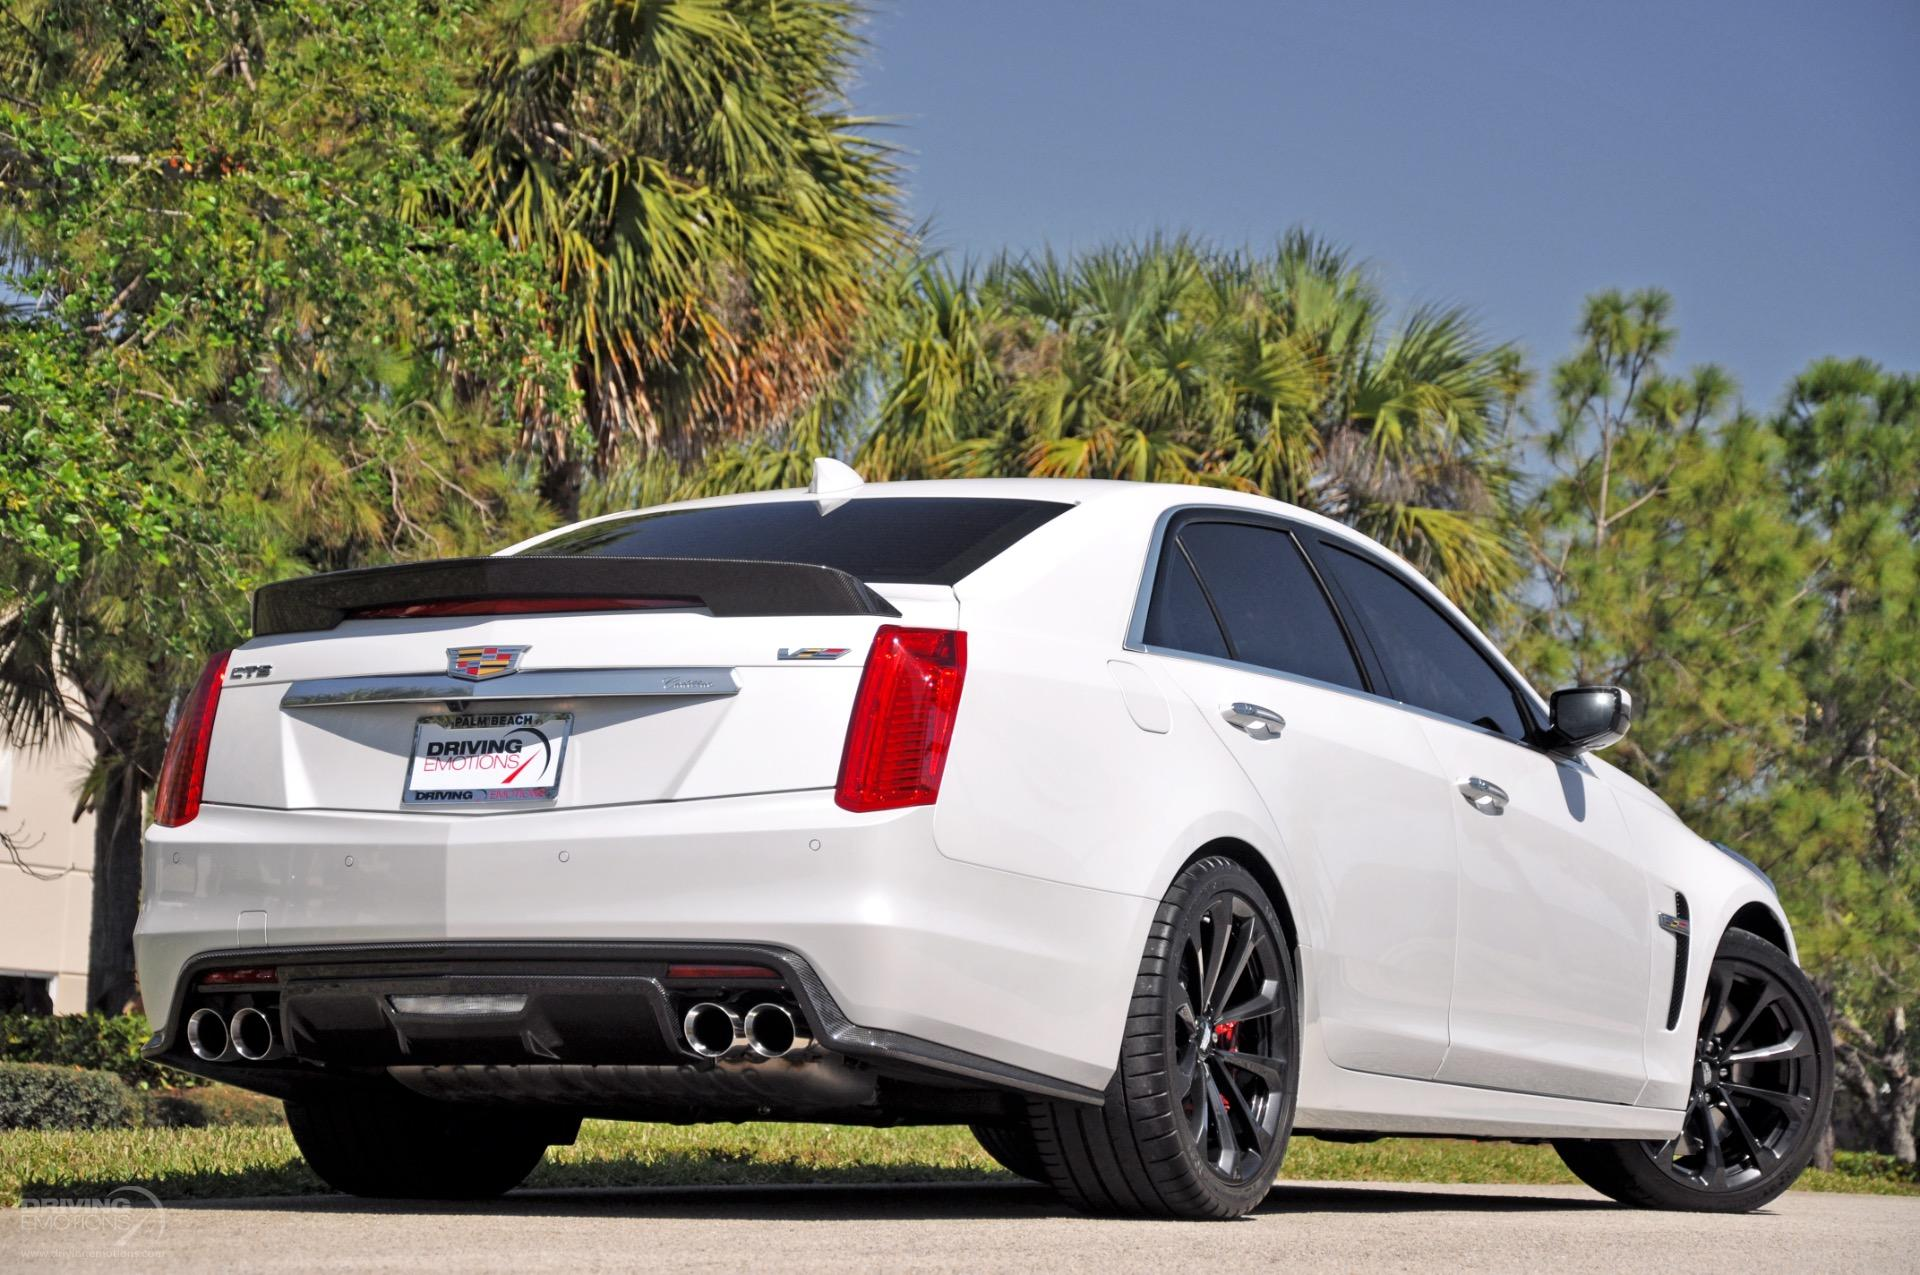 Cadillac Cts V Autotrader >> Used Cadillac Cts-v | News of New Car Release